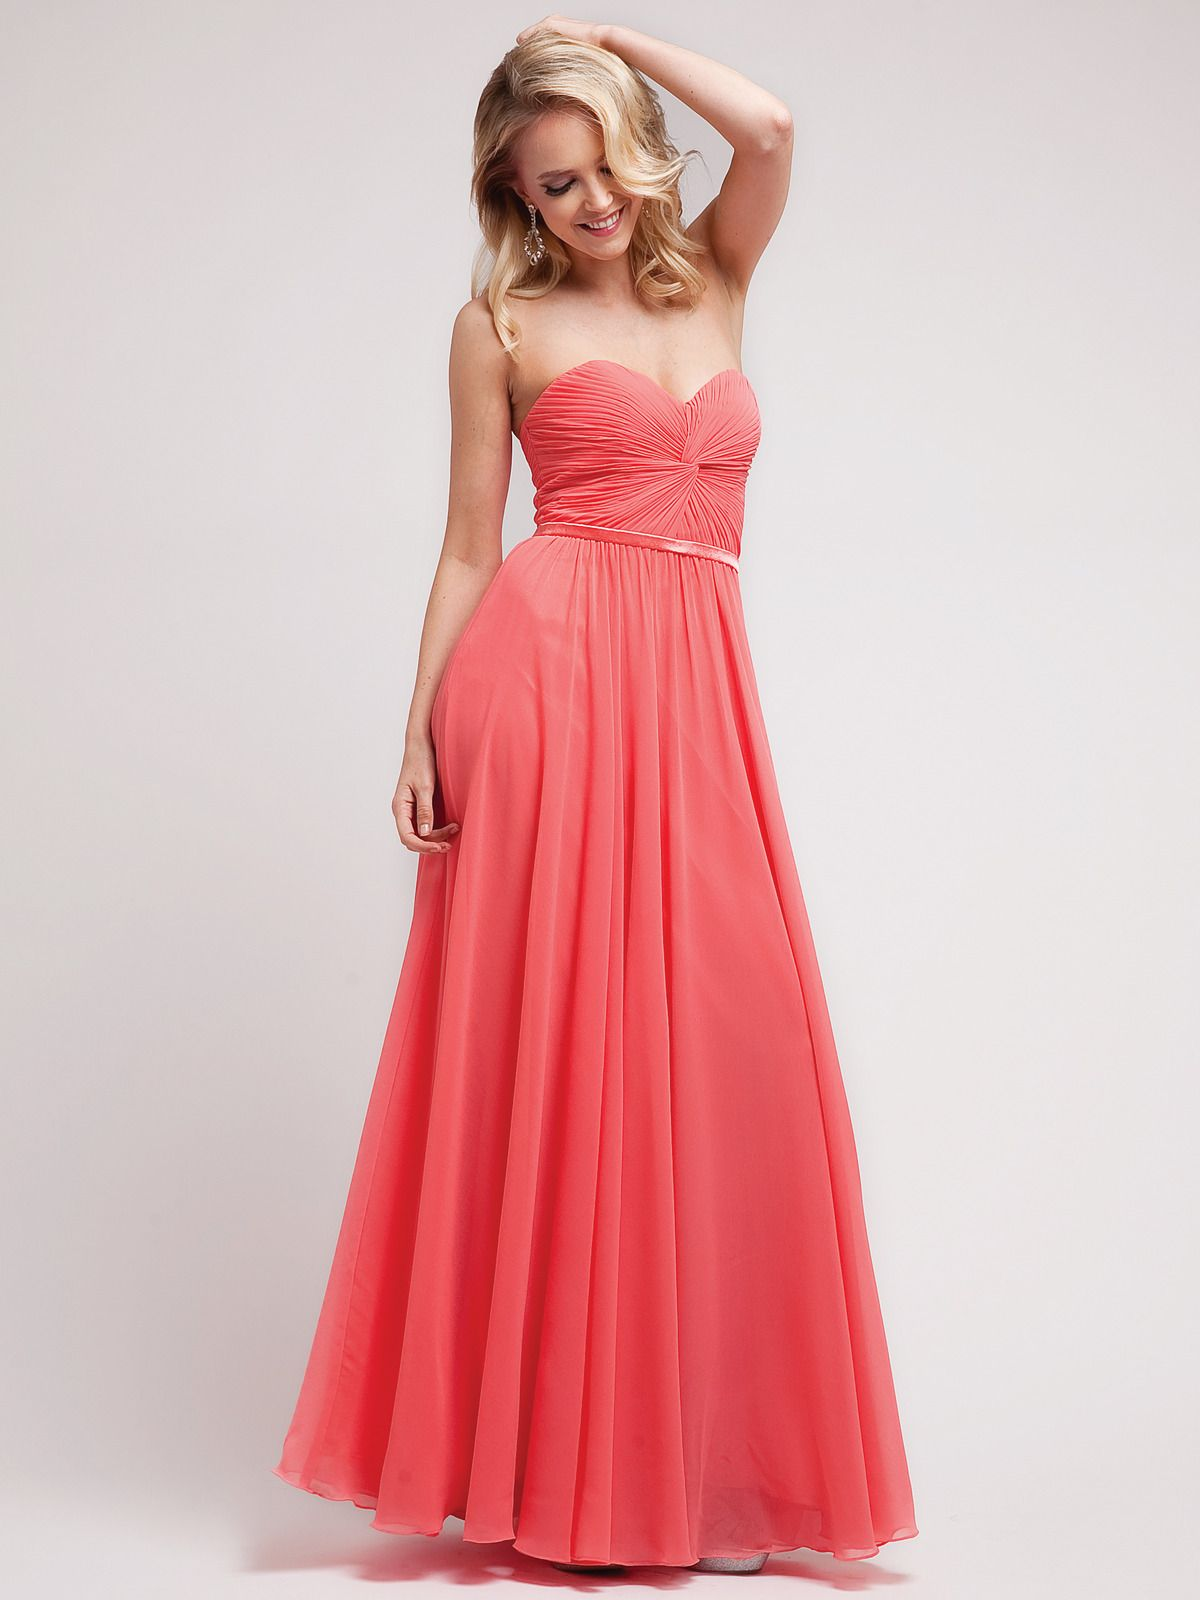 1000  images about Bridesmaid 2015 on Pinterest  Chiffon evening ...